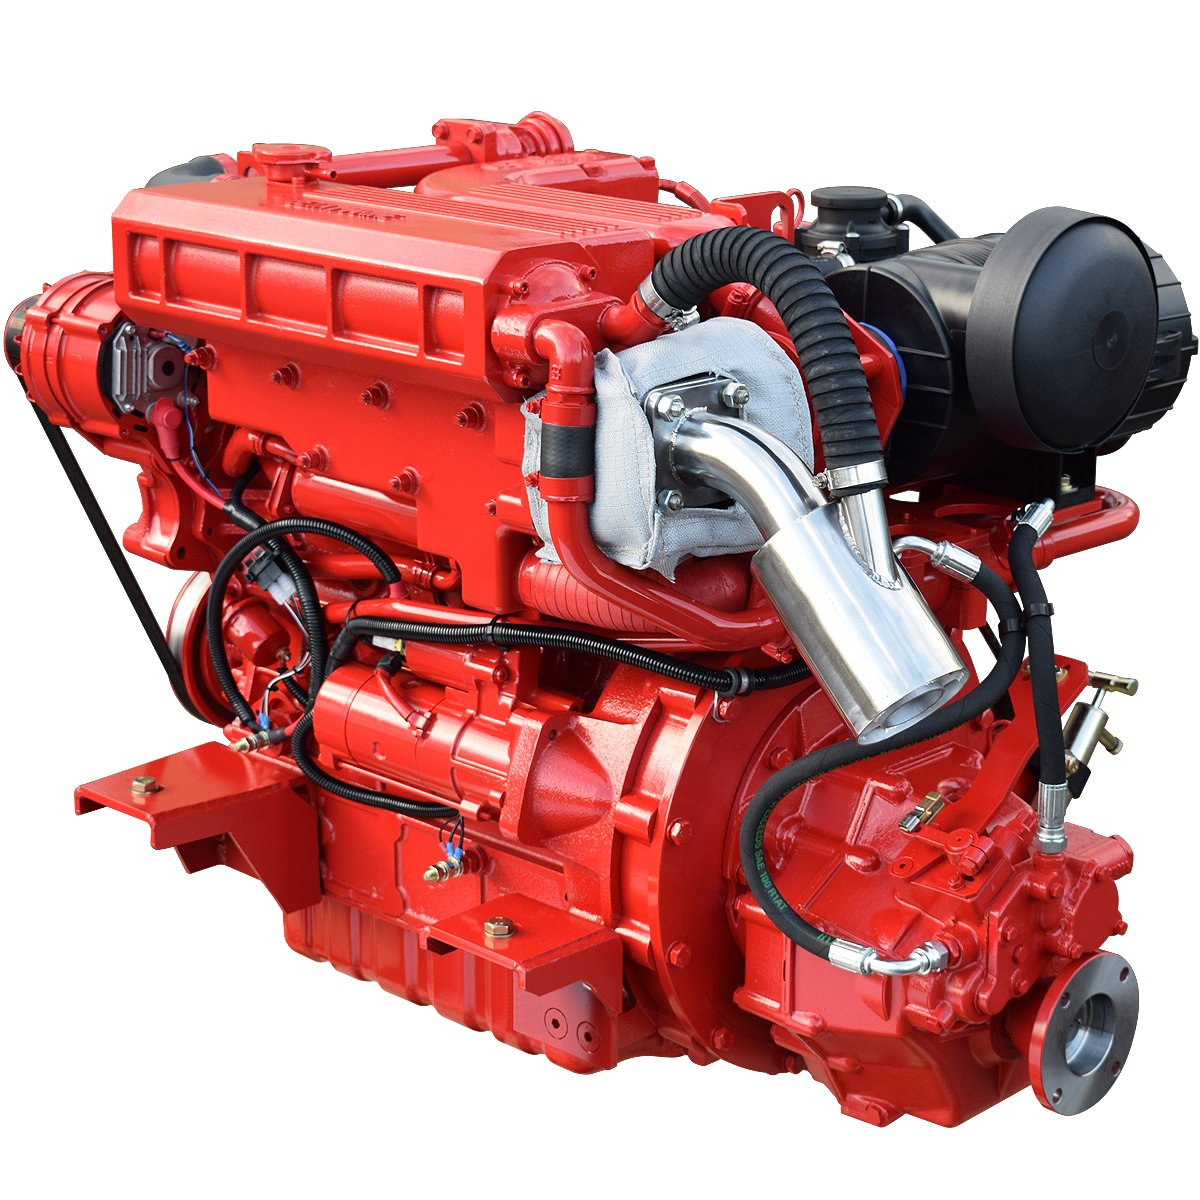 Beta Marine USA - marine diesel propulsion engines - Beta 115T heat exchanger engine